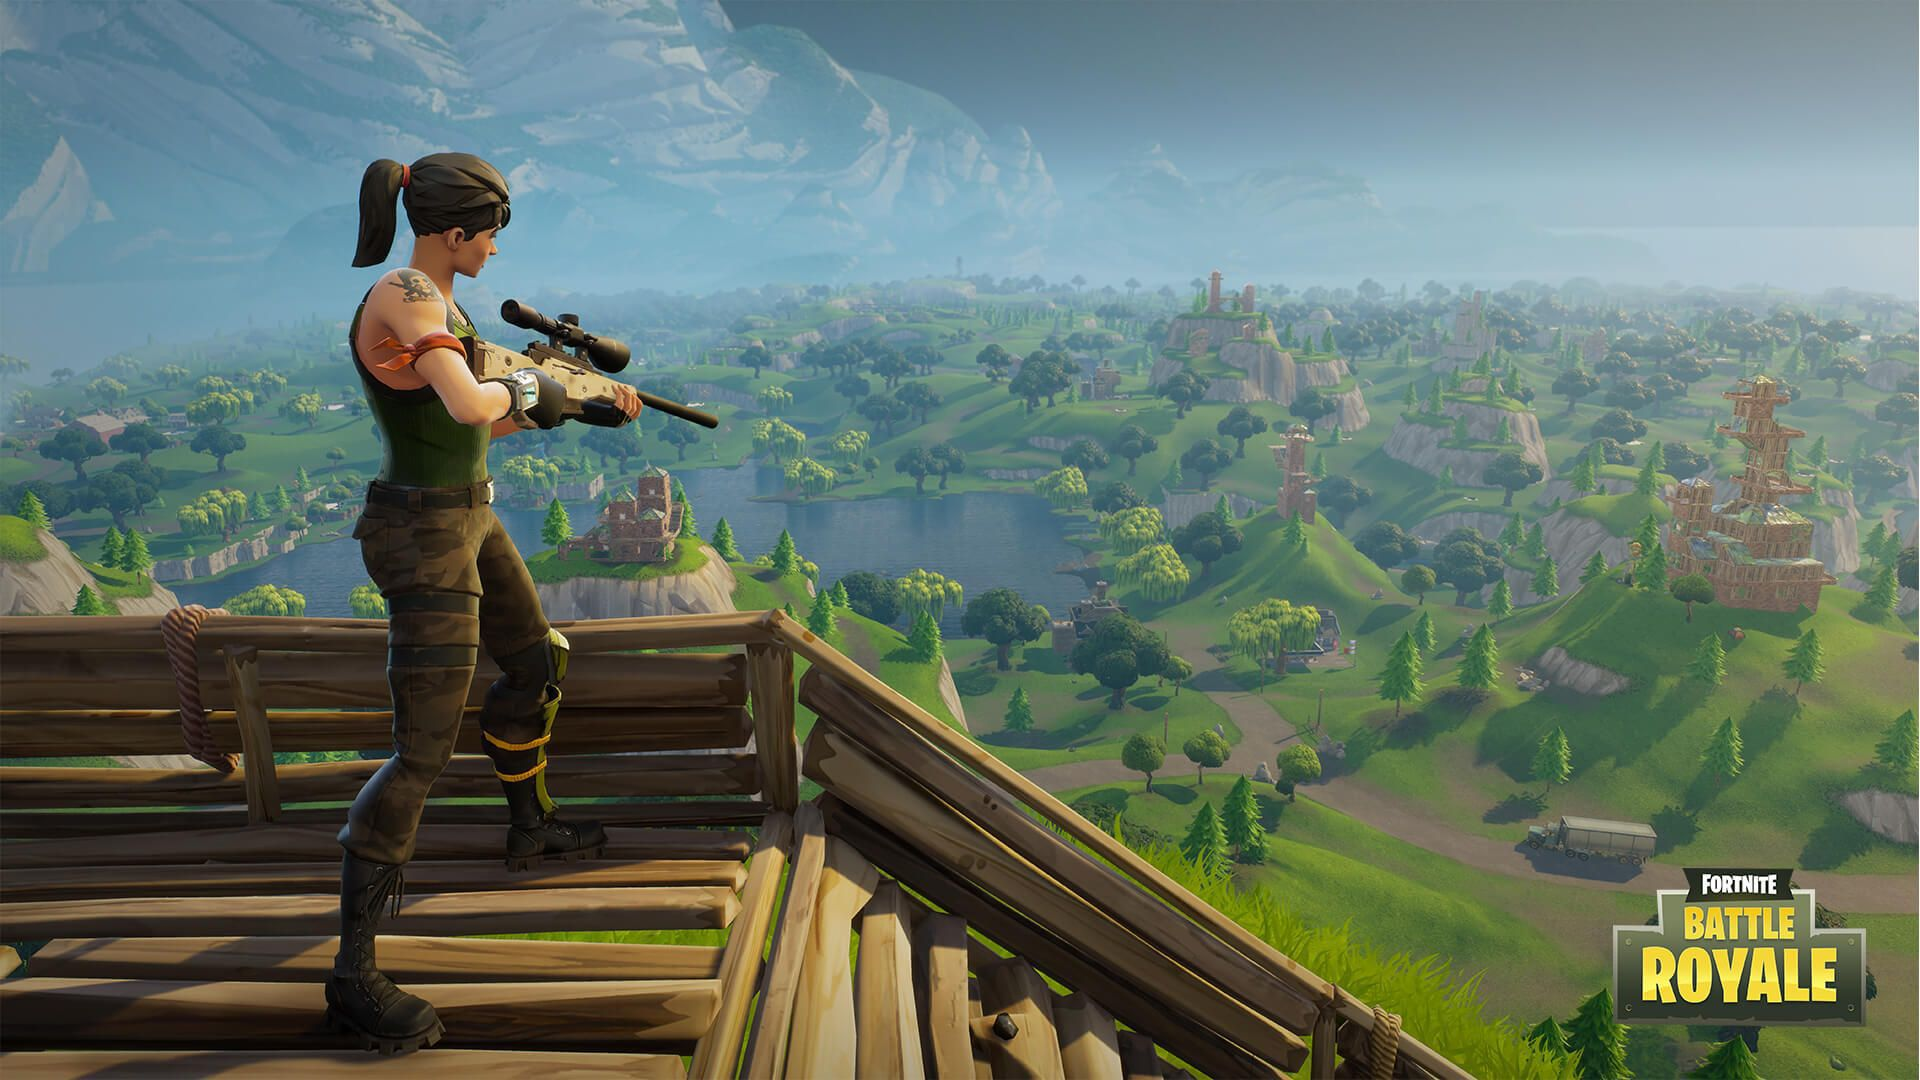 Friday Fortnite May 31 Live Scores Bracket And